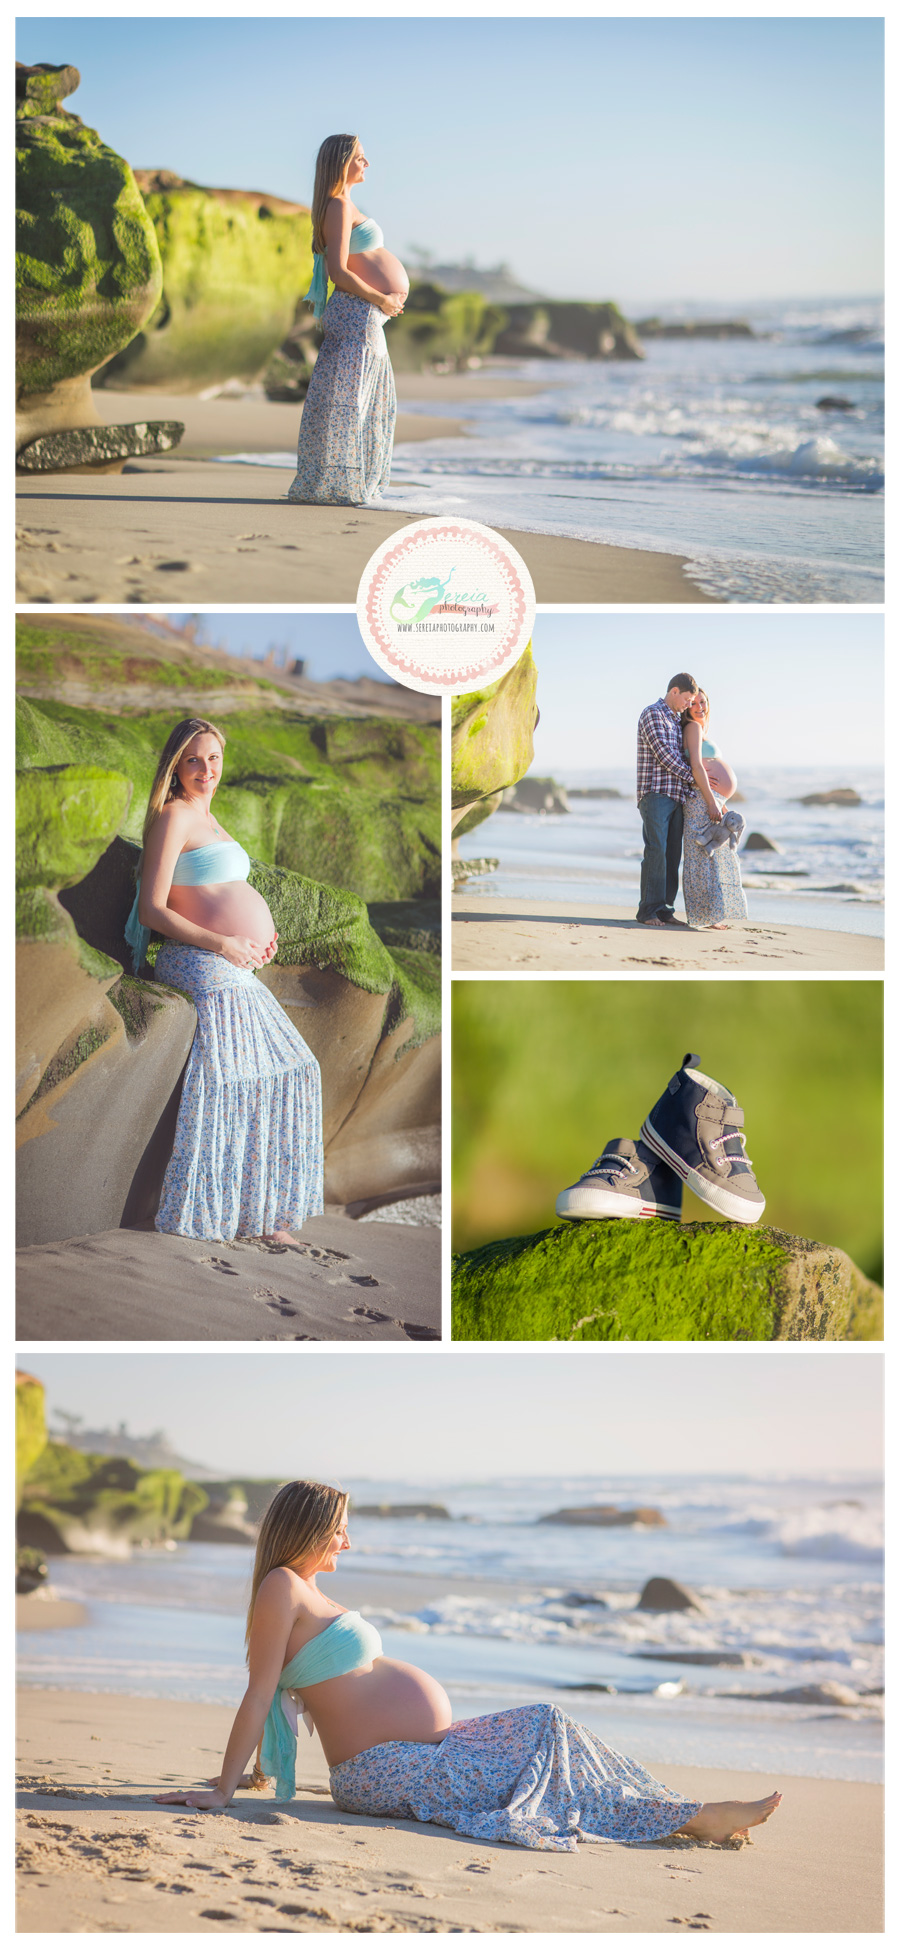 Maternity Photo Session at Windandsea Beach - La Jolla